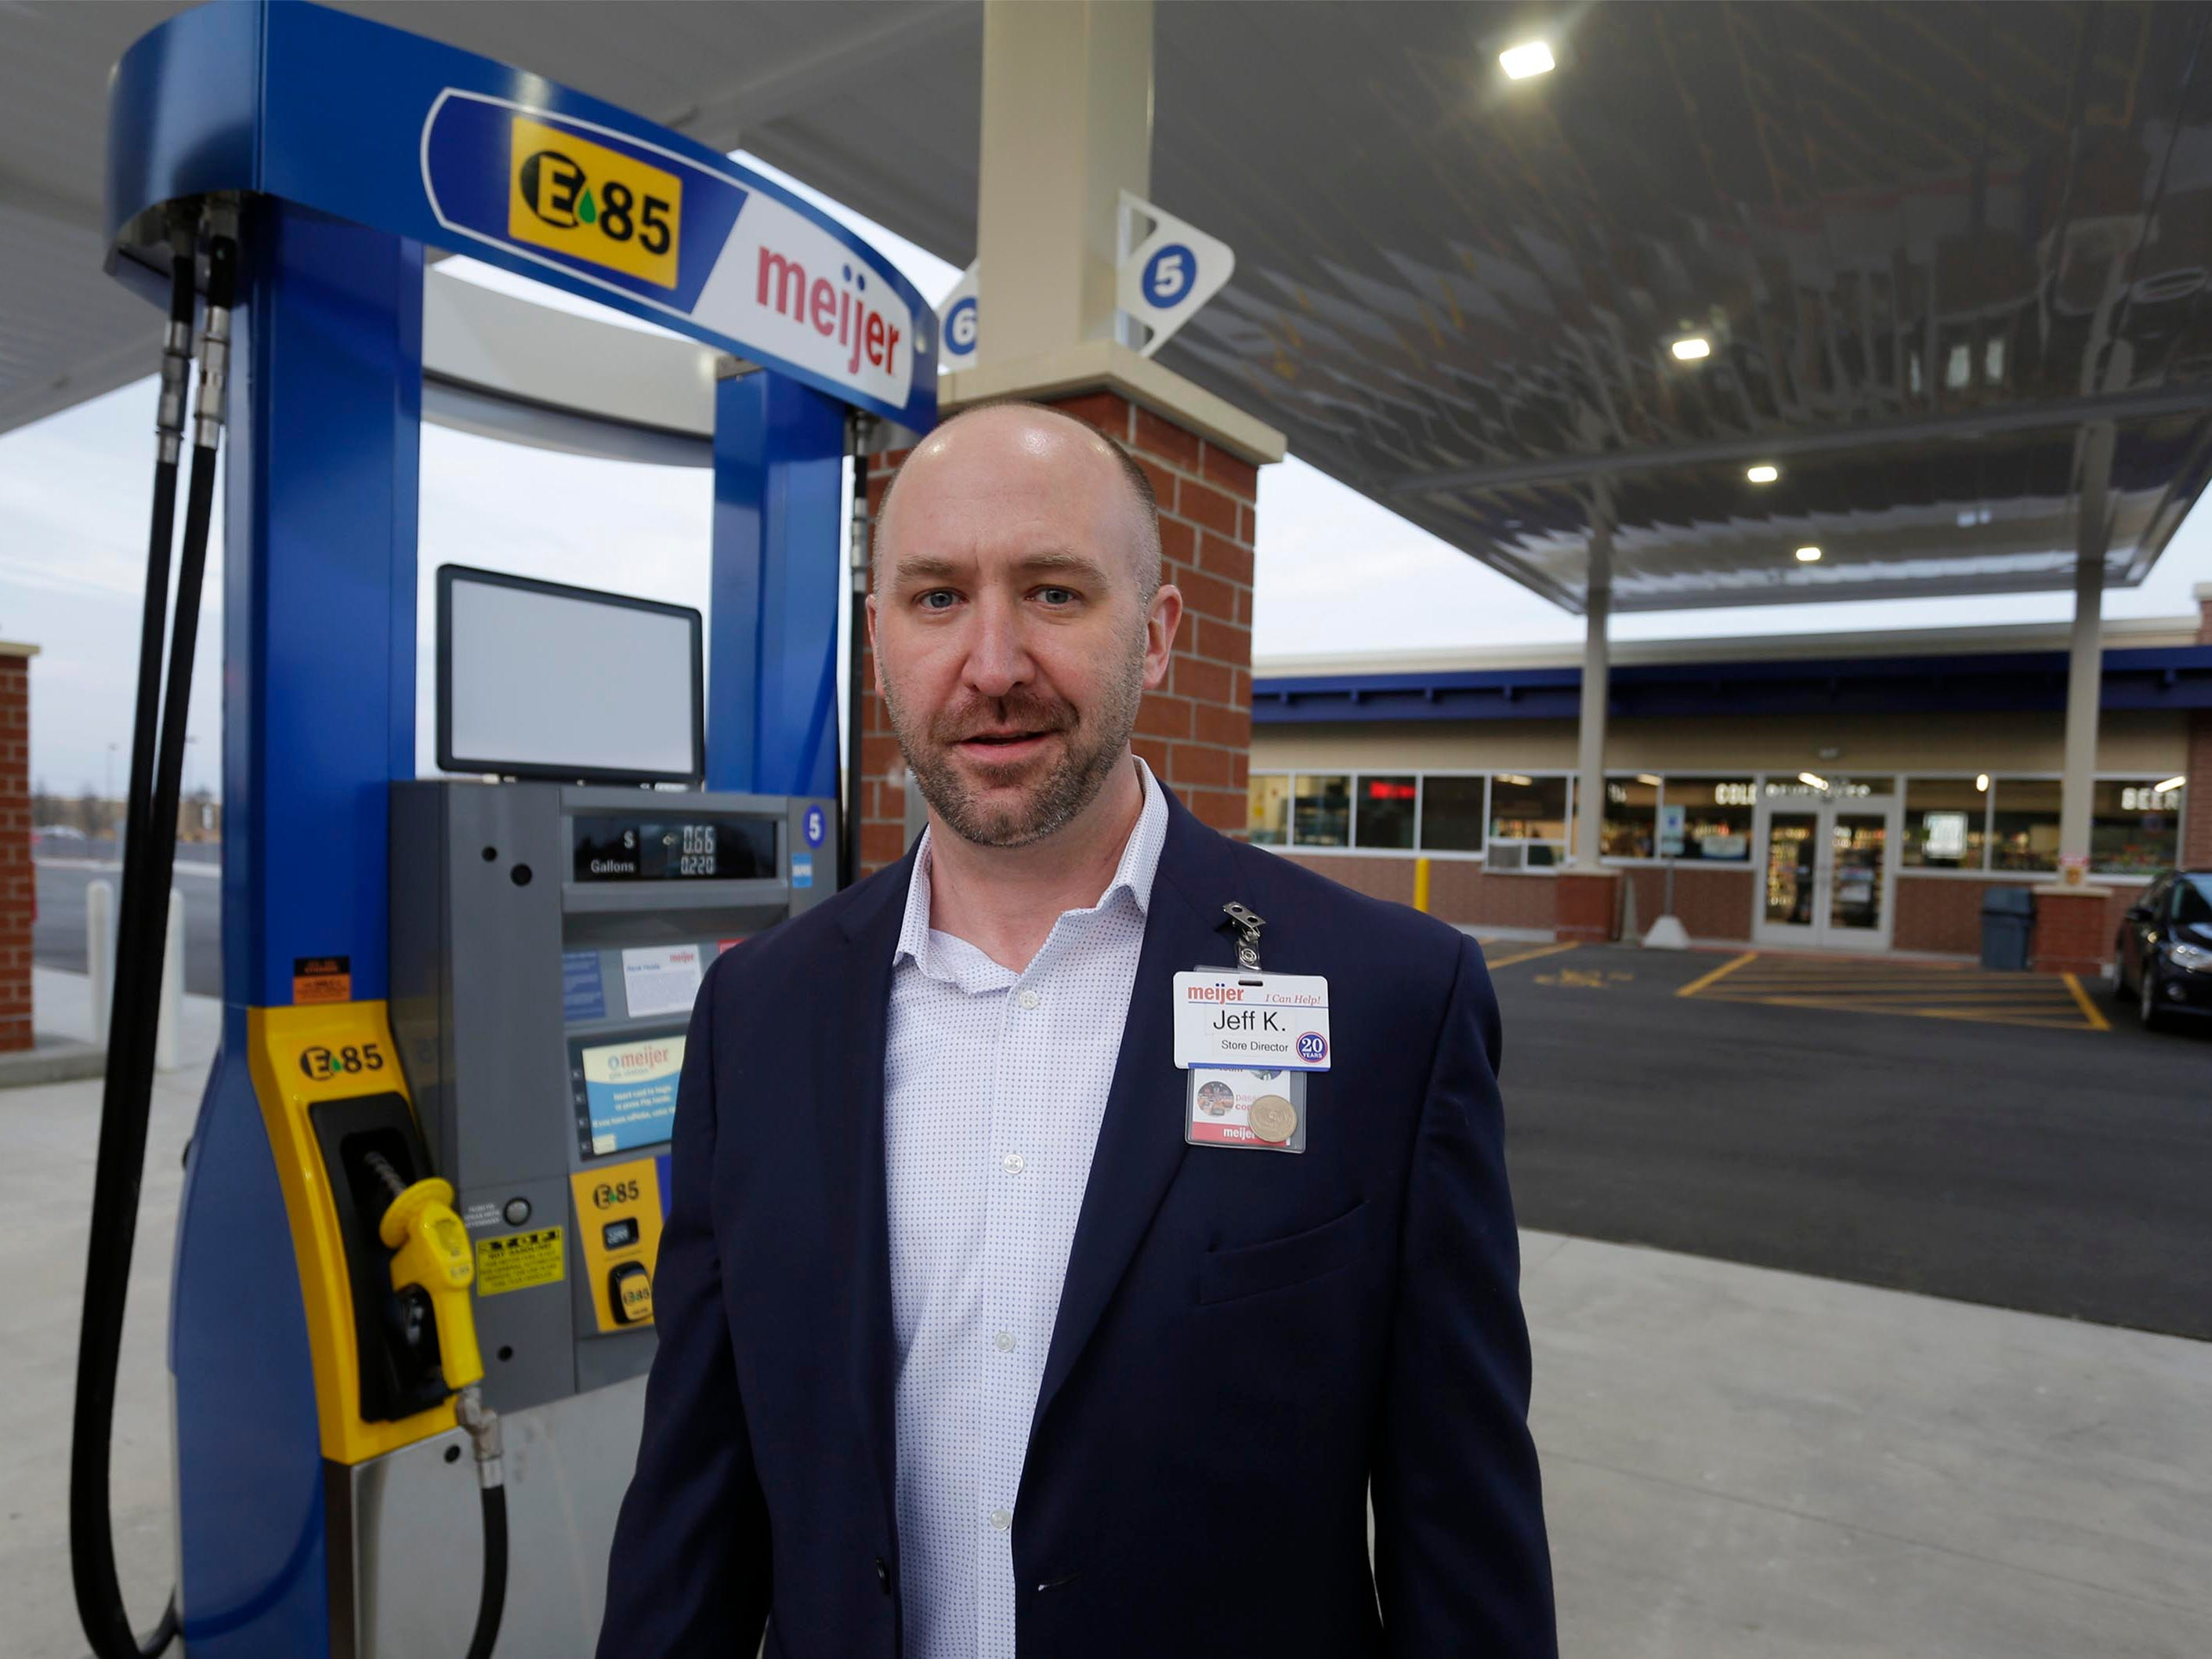 Meijer Store Director Jeff Kietzman poses by a fuel pump at the new Meijer gas station, Thursday, March 28, 2019, in Sheboygan, Wis.